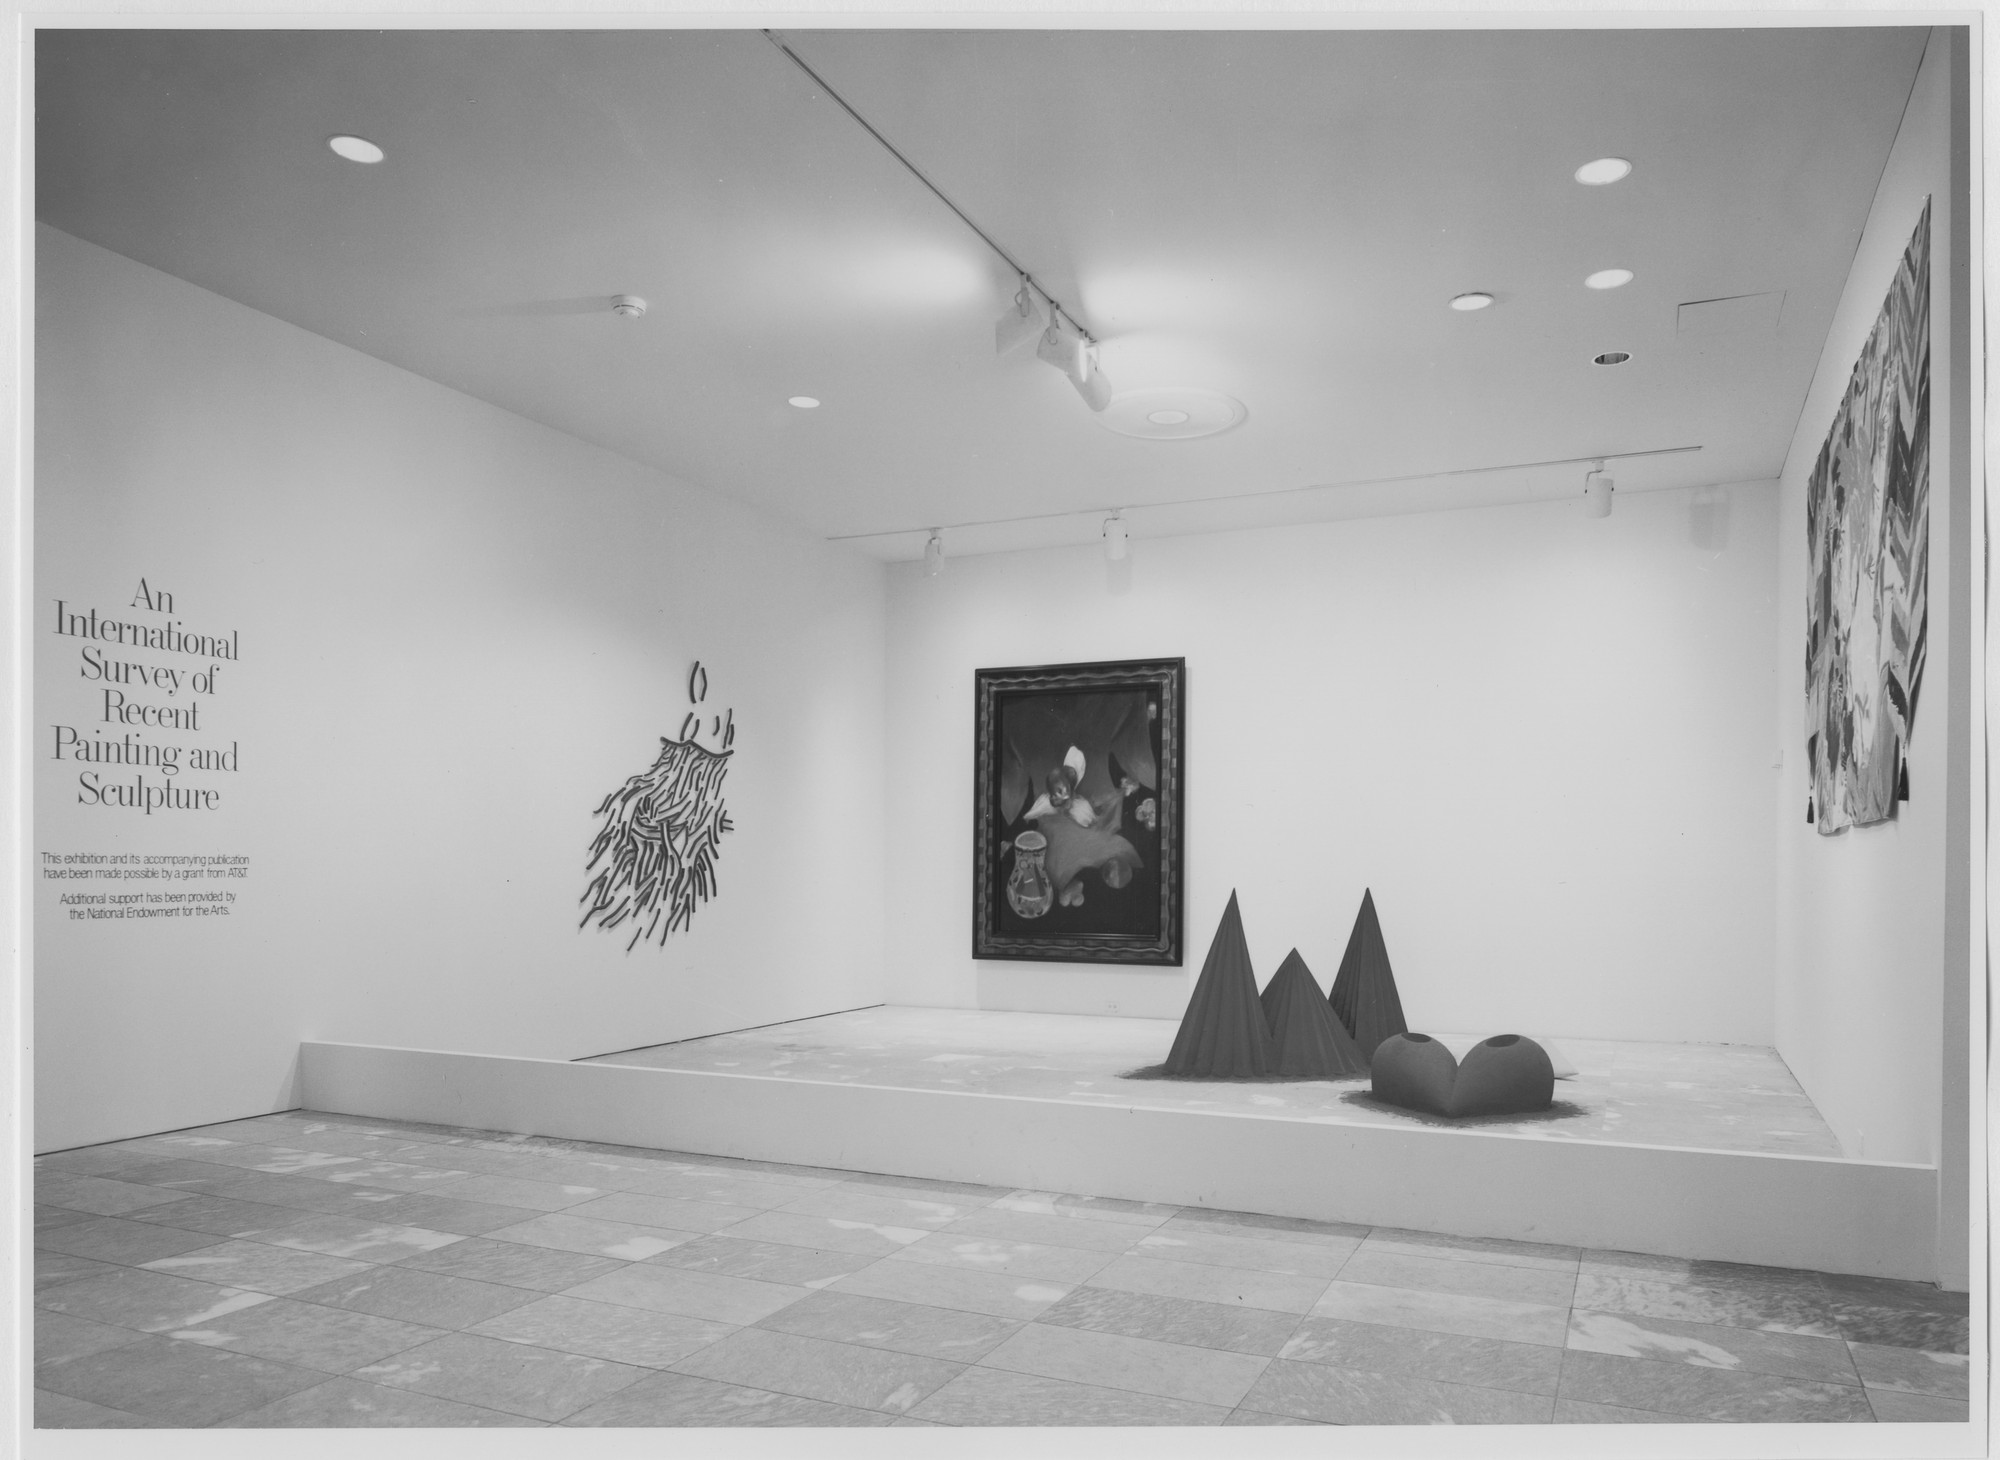 "Installation view of the exhibition, ""International Survey of Recent Painting and Sculpture"" May 17, 1984–August 19, 1984. Photographic Archive. The Museum of Modern Art Archives, New York. IN1377.1. Photograph by Katherine Keller."